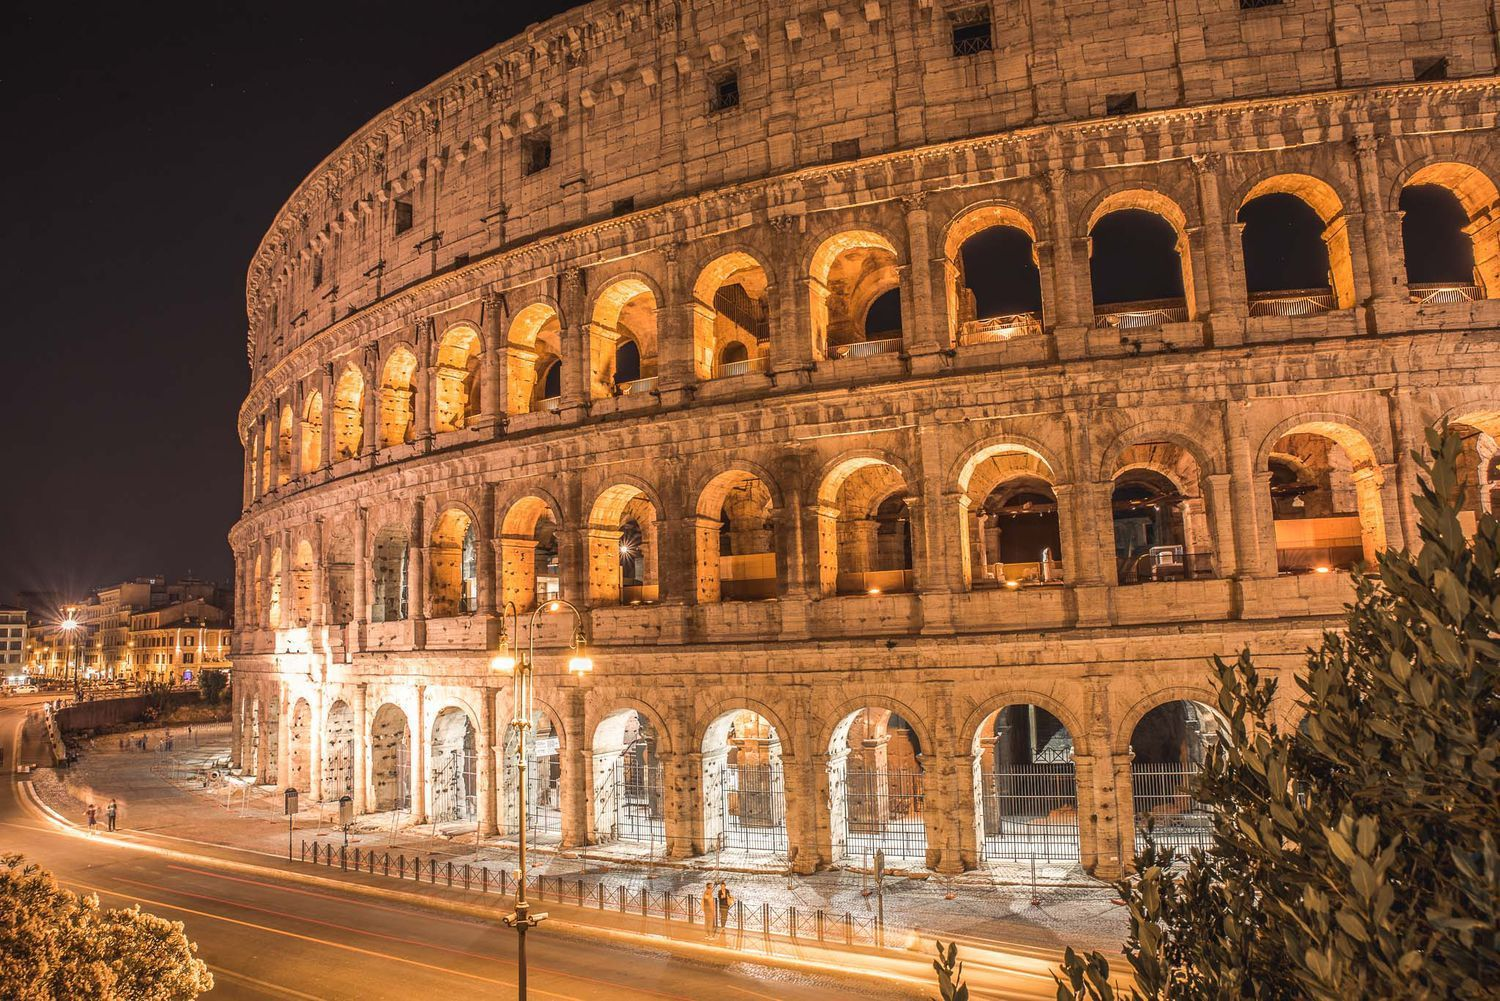 Weekend in Rome itinerary